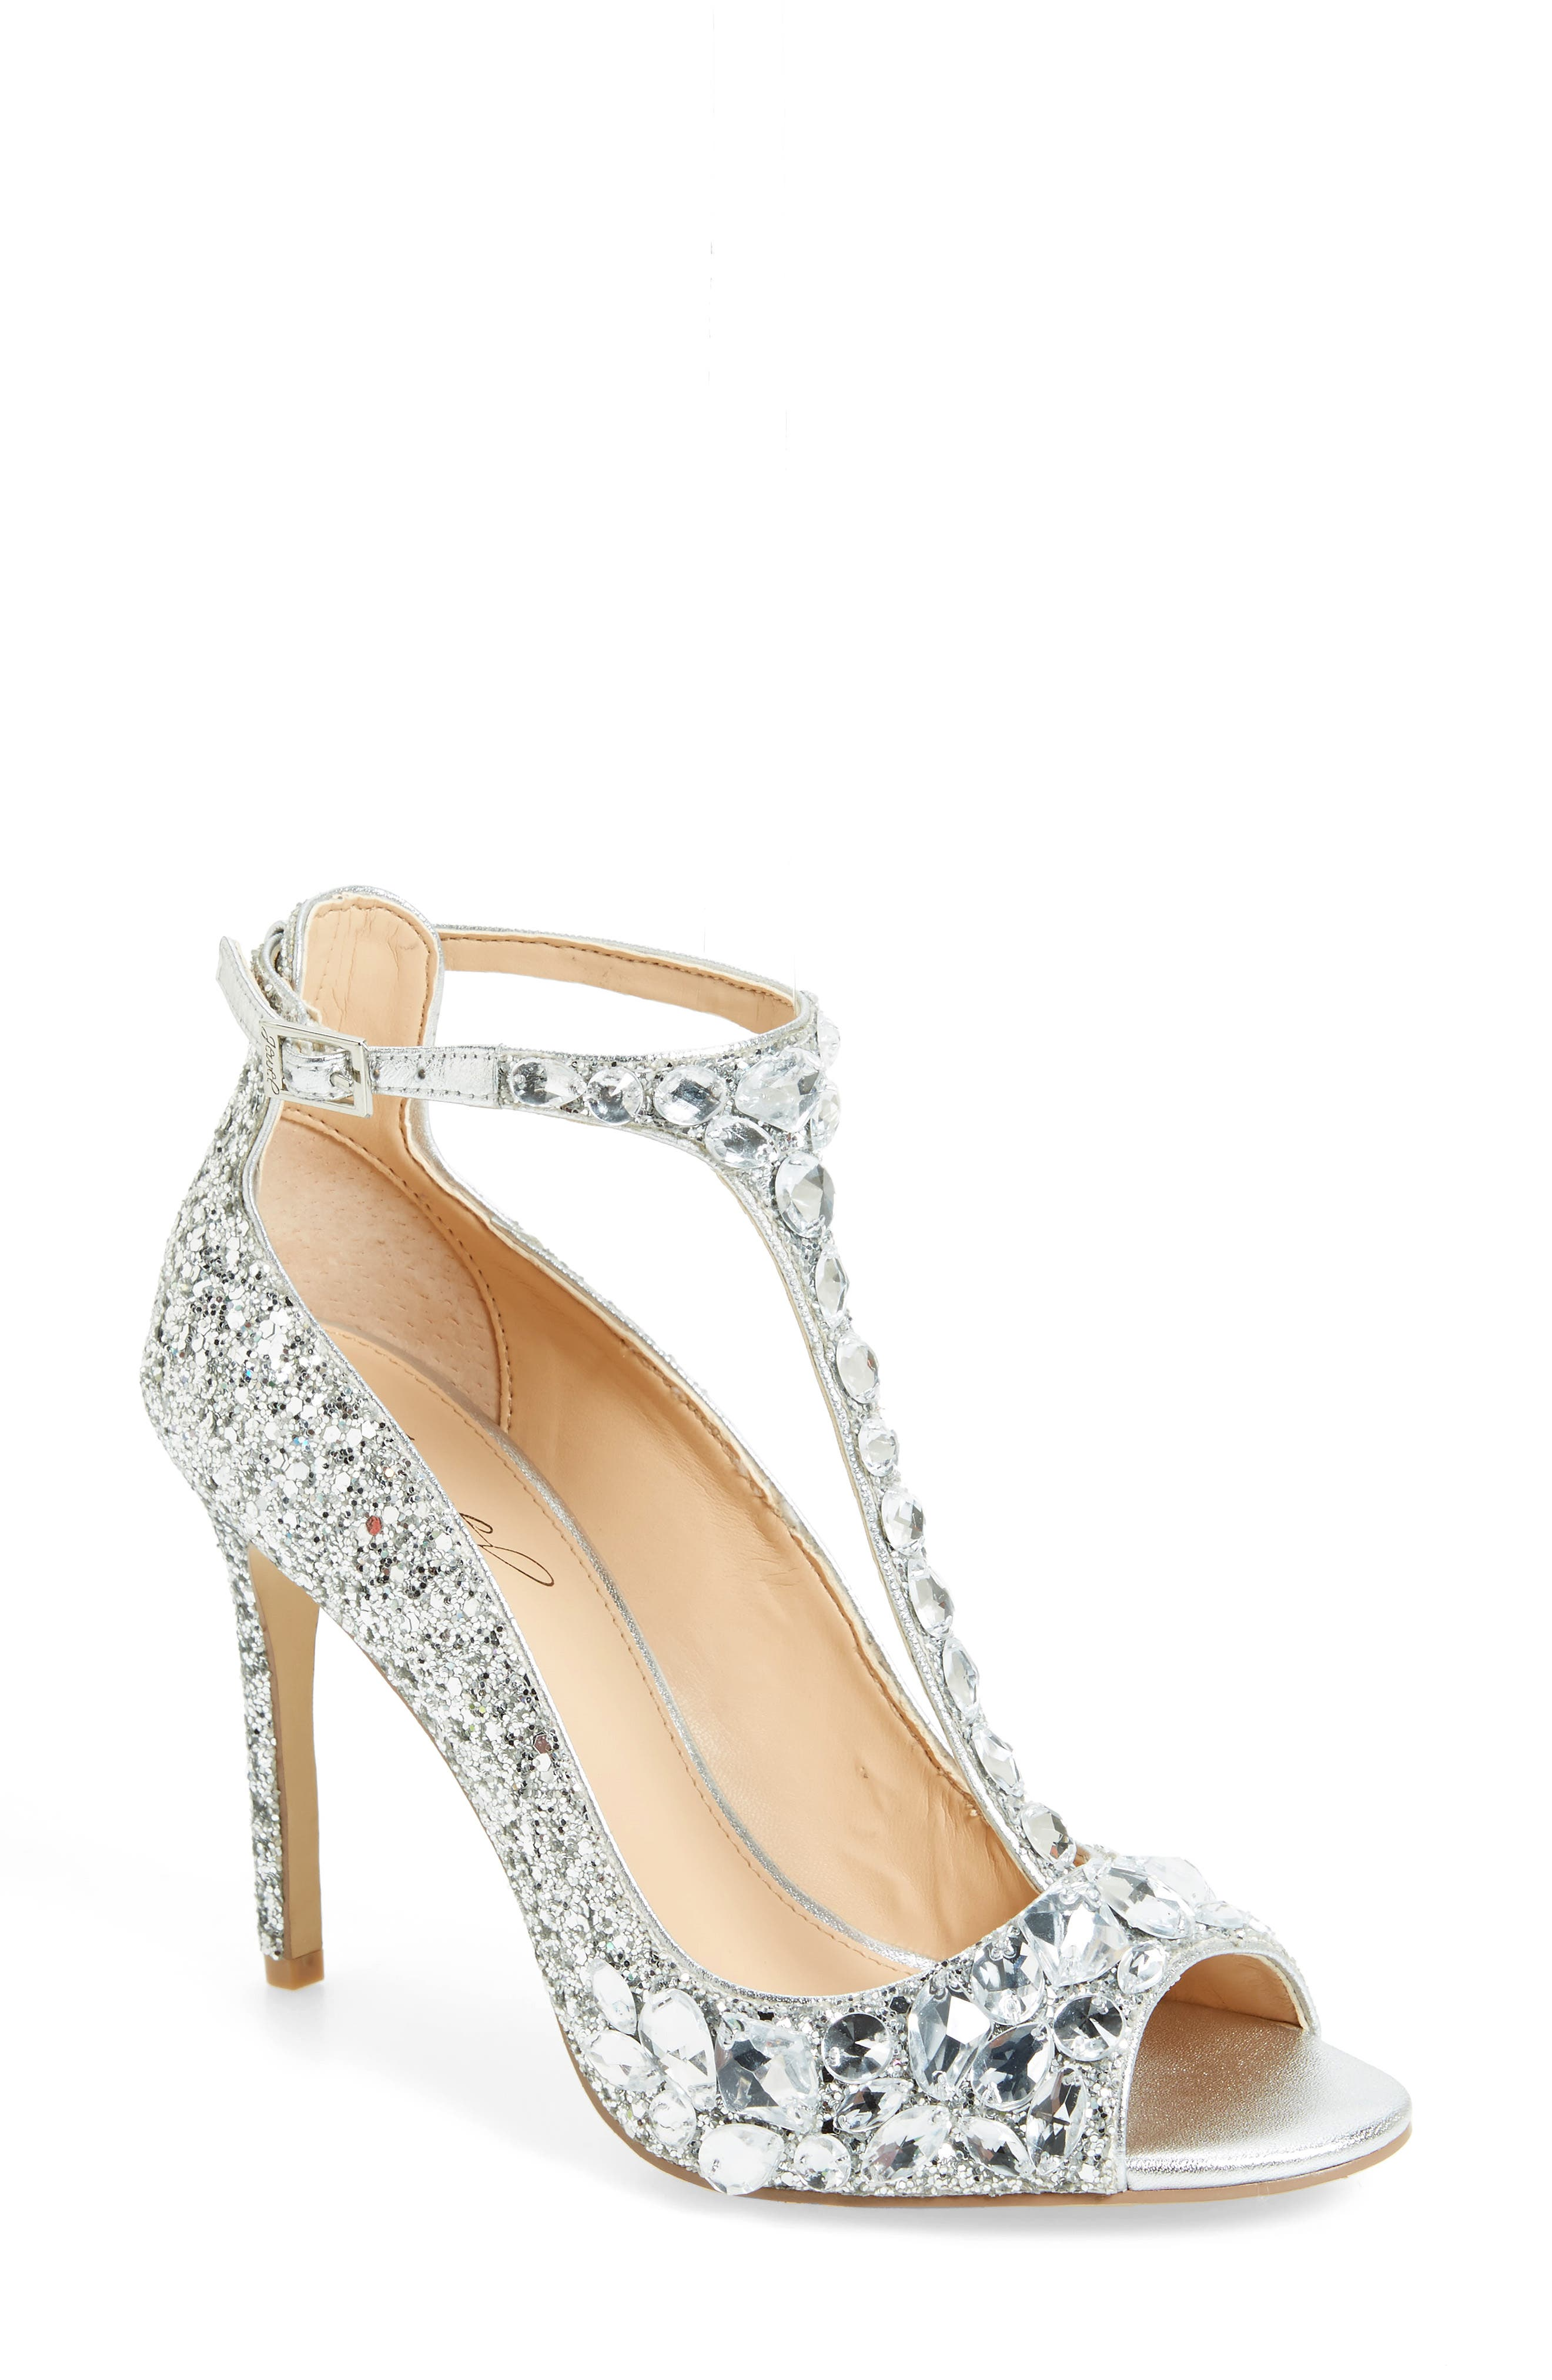 Conroy Embellished T-Strap Pump,                             Main thumbnail 1, color,                             SILVER